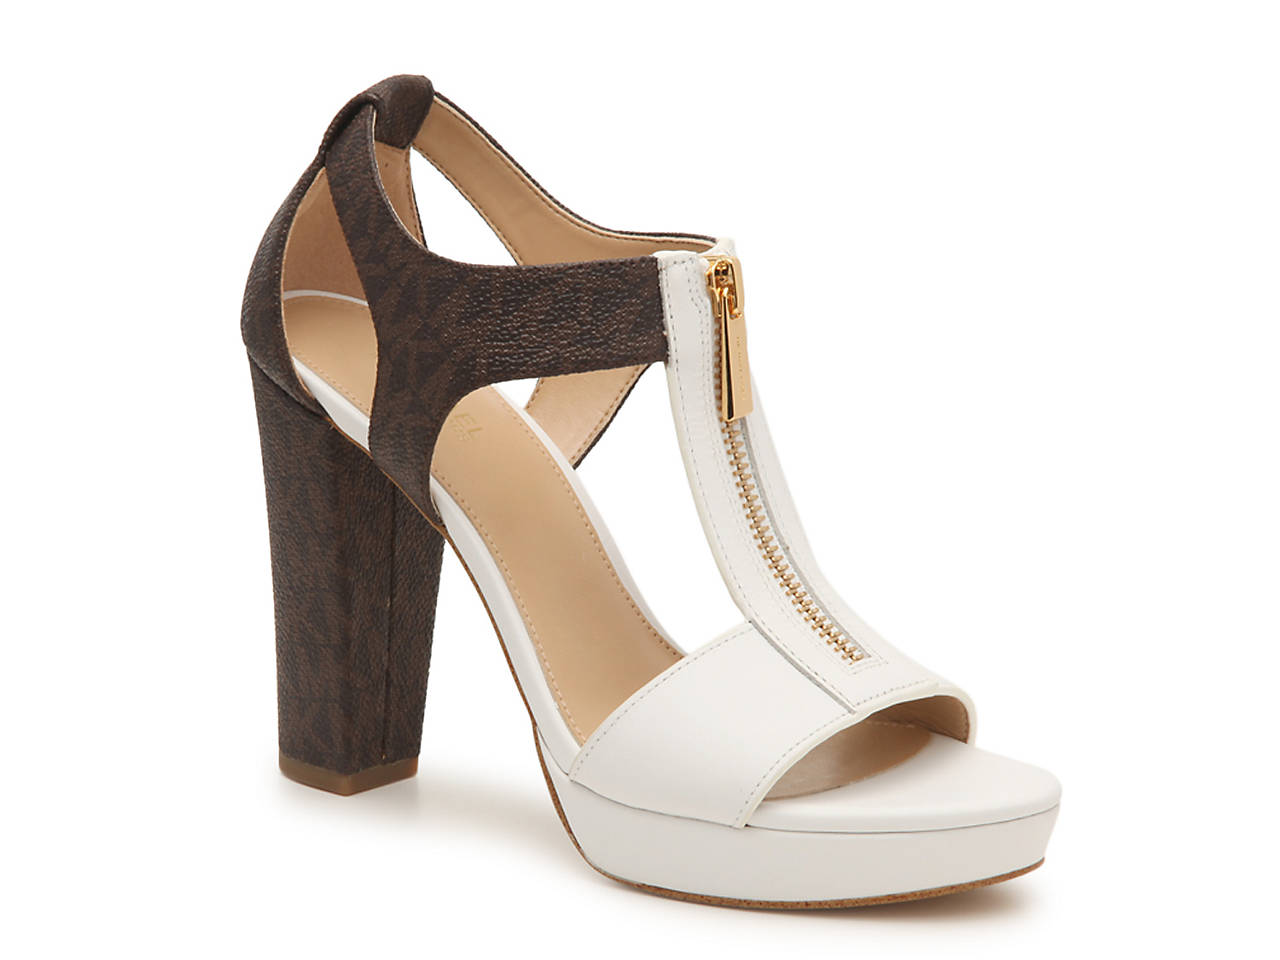 eee55e0187f9 Michael Michael Kors Berkley Platform Sandal Women s Shoes